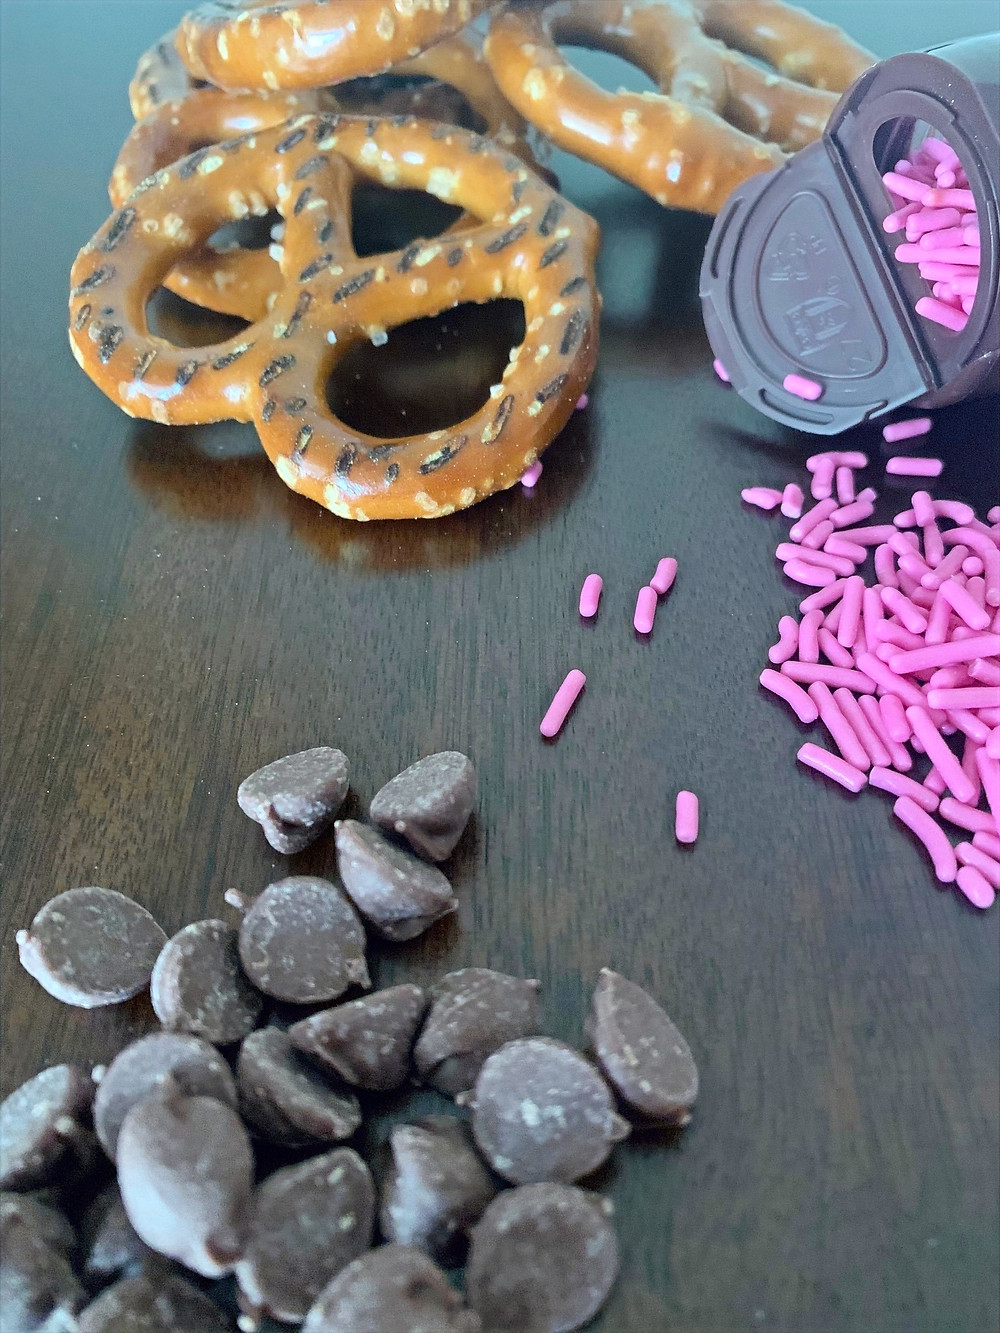 Ingredients: Pretzels, chocolate chips and sprinkles